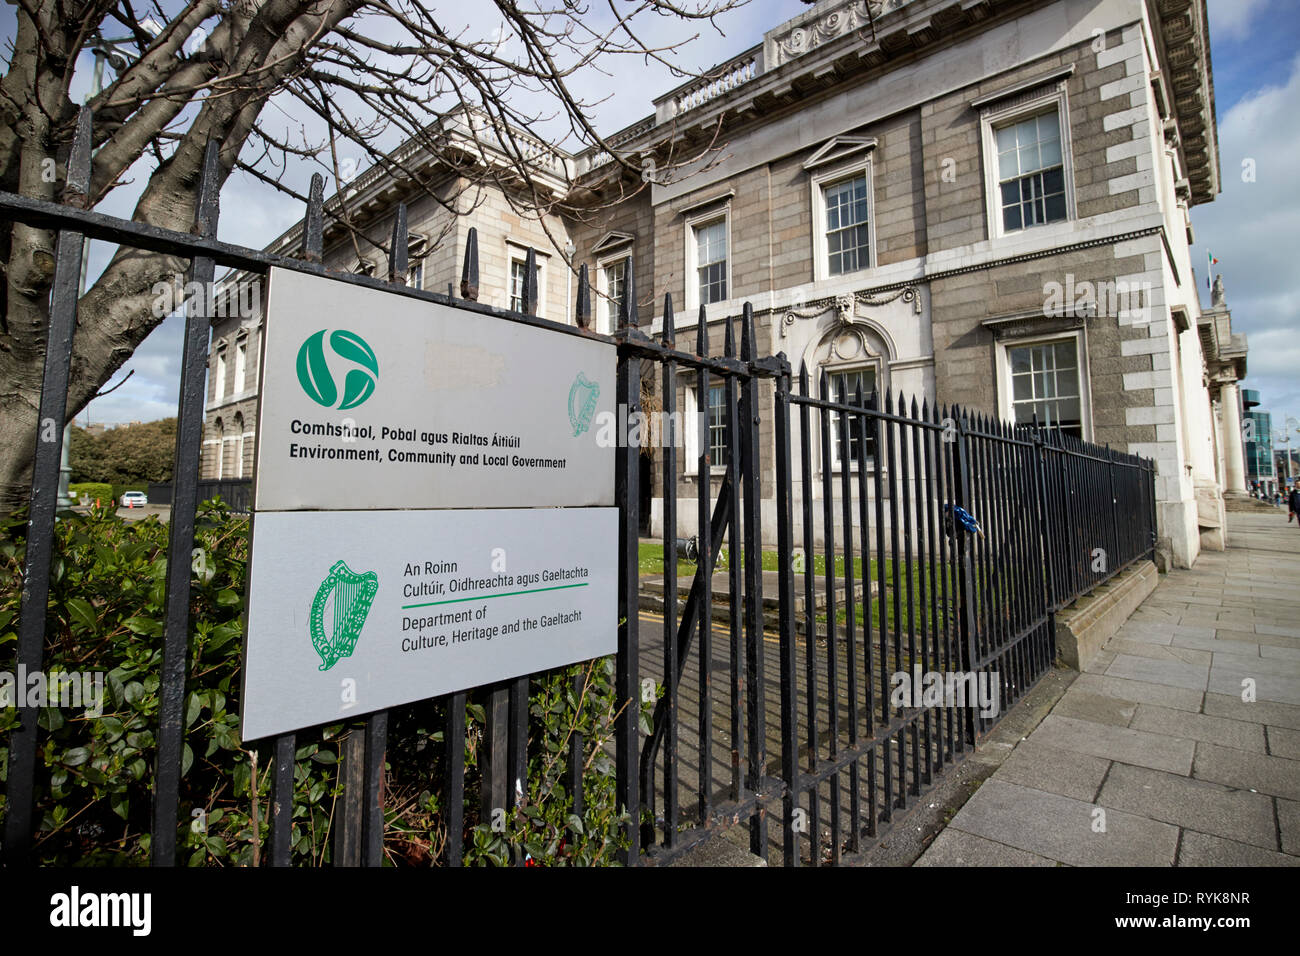 Department of Culture Heritage and the Gaeltacht and Environment Community and Local Government at the Custom House custom house quay Dublin republic  - Stock Image